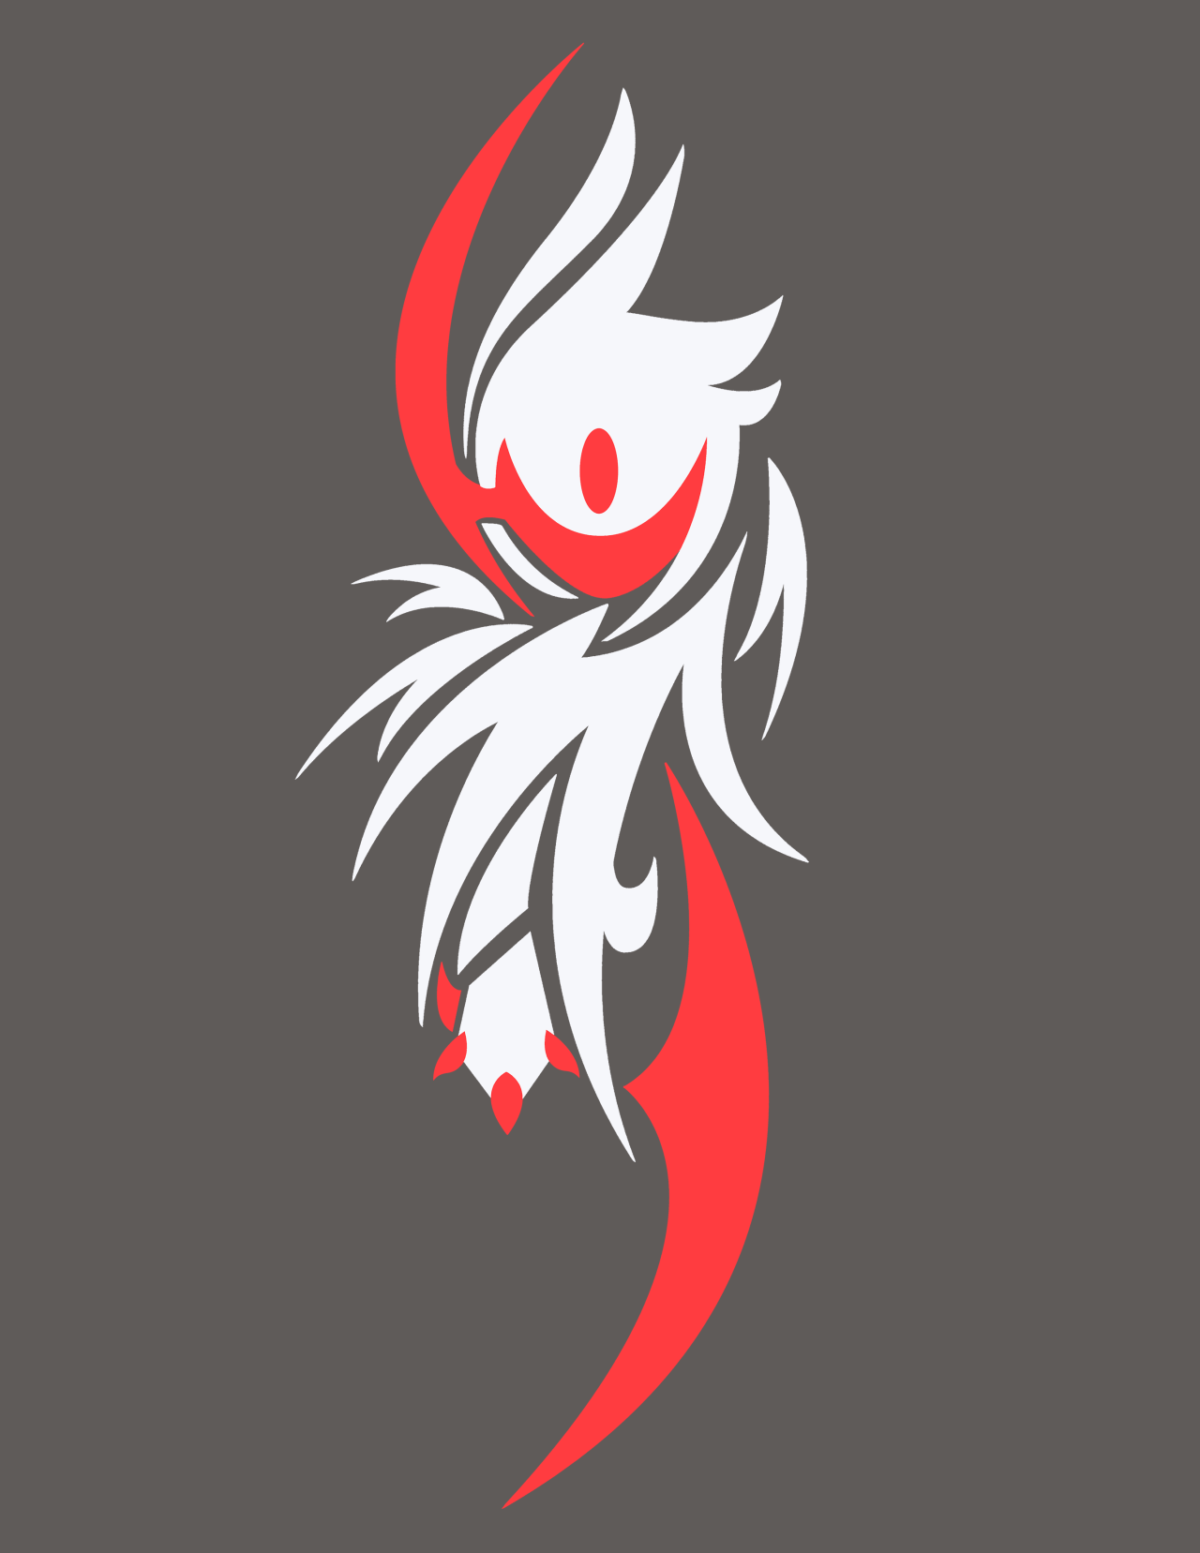 Group of Absol Phone Wallpaper